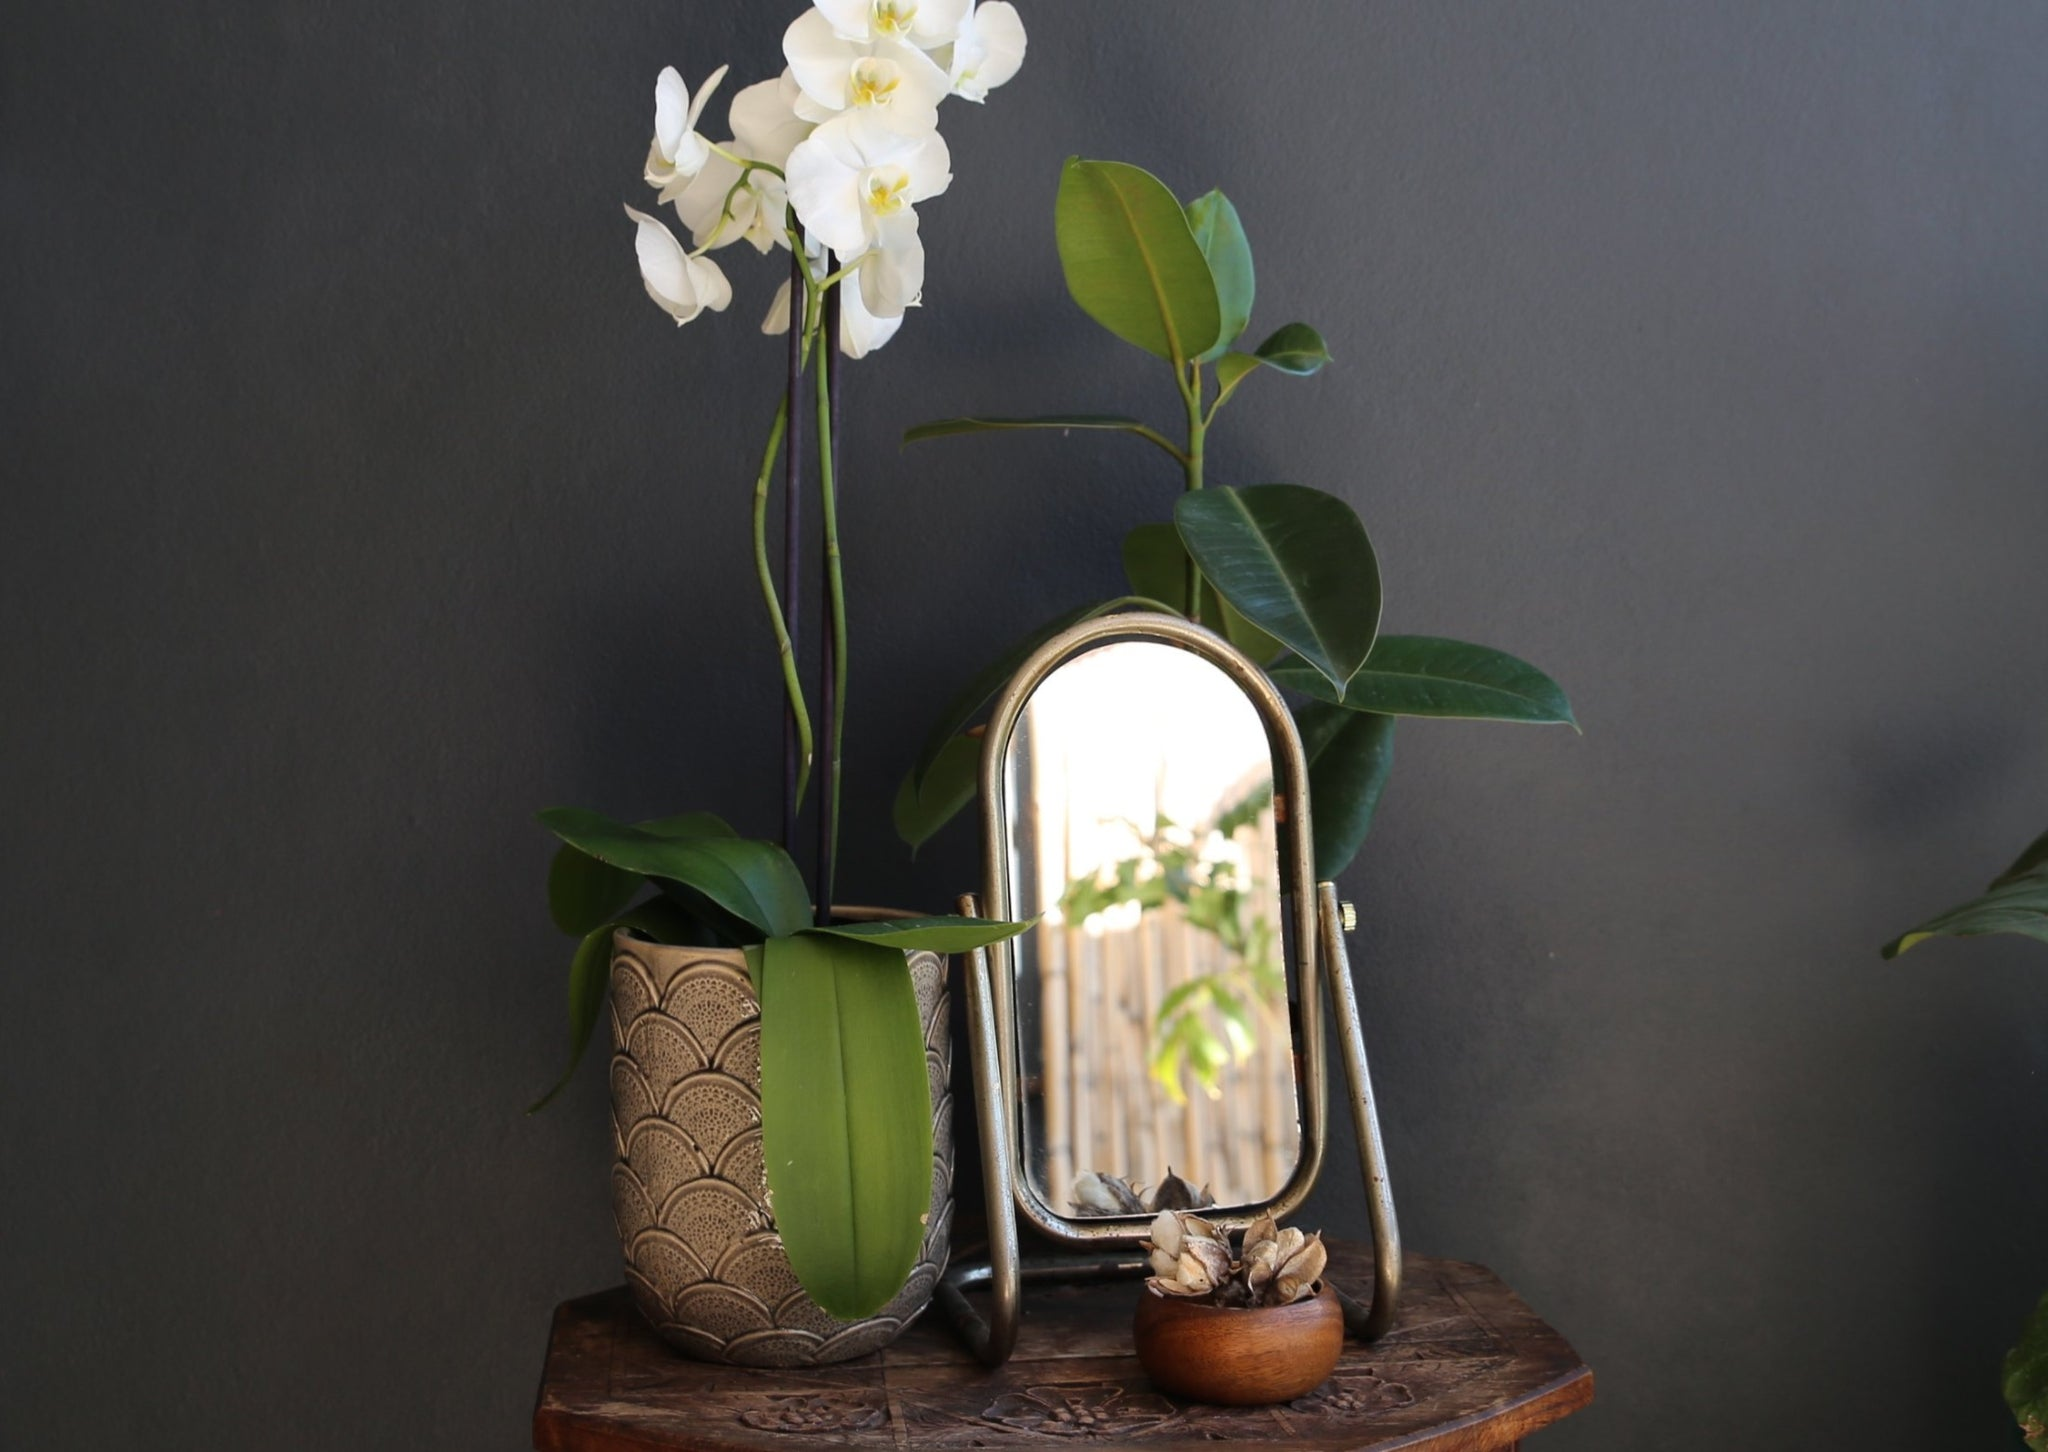 Vintage Standing Vanity / Table Mirror - Stainless Steel Metal